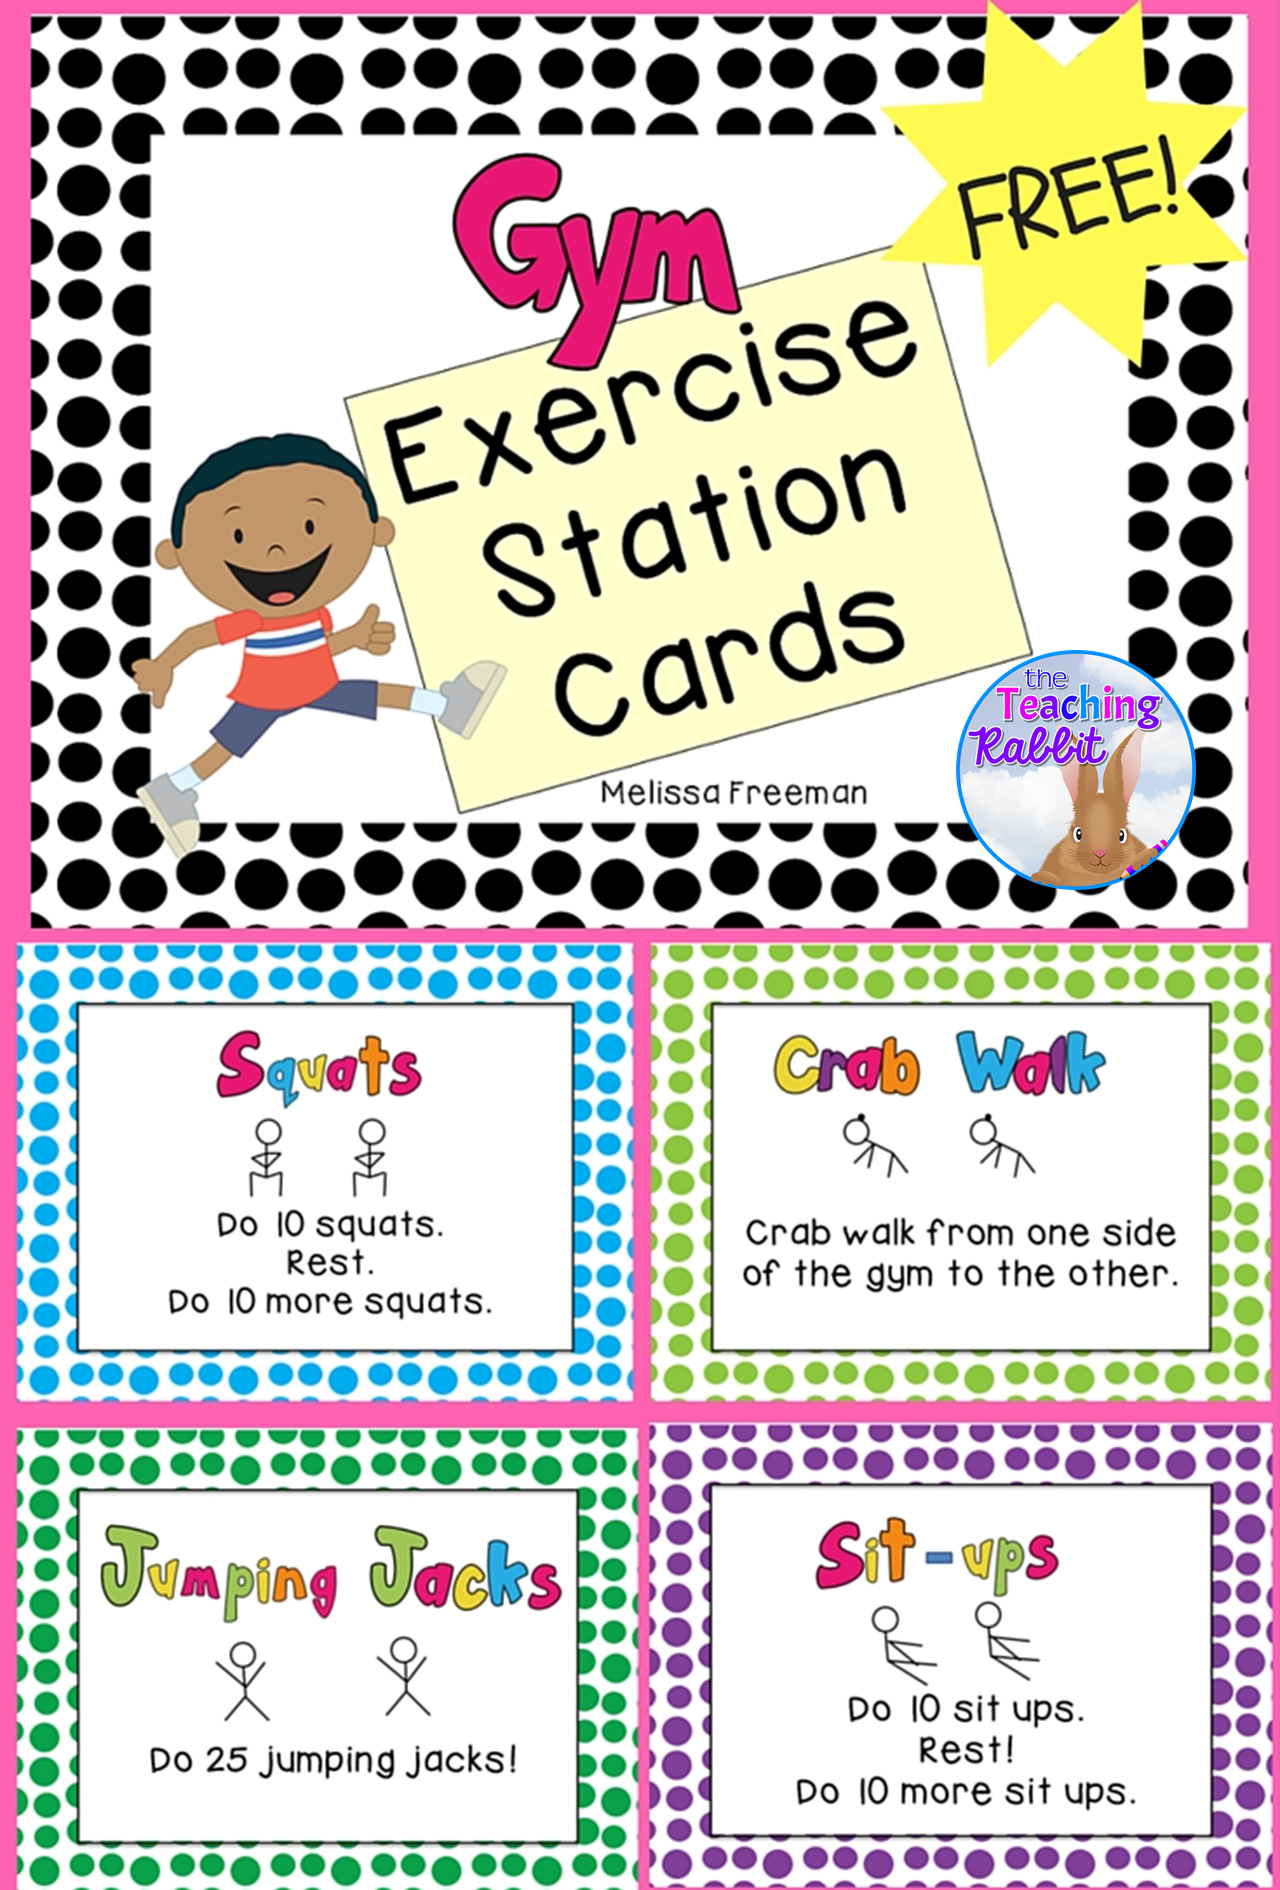 Mesmerizing image regarding printable exercise cards